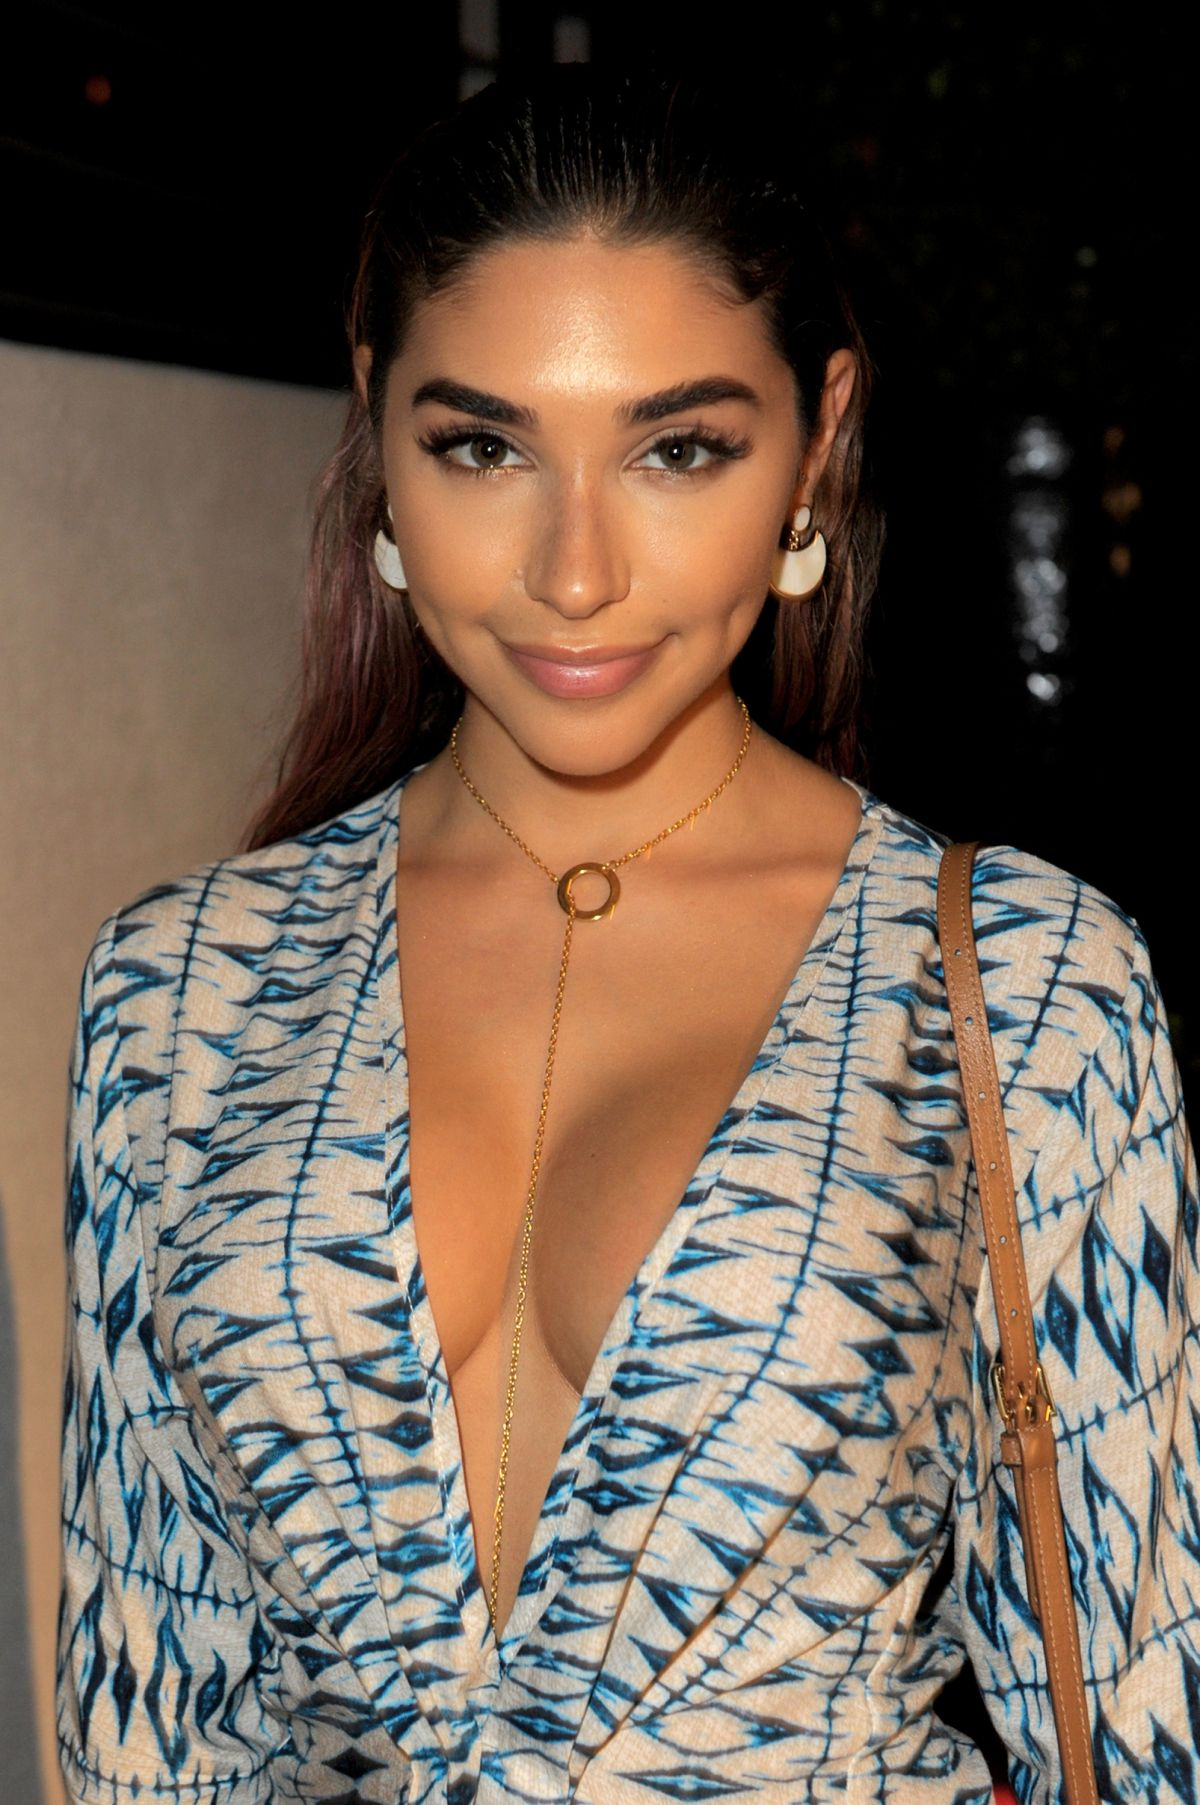 CHANTEL JEFFRIES at Maxim Magazine Worldwide Swimwear Collection Launch in Miami